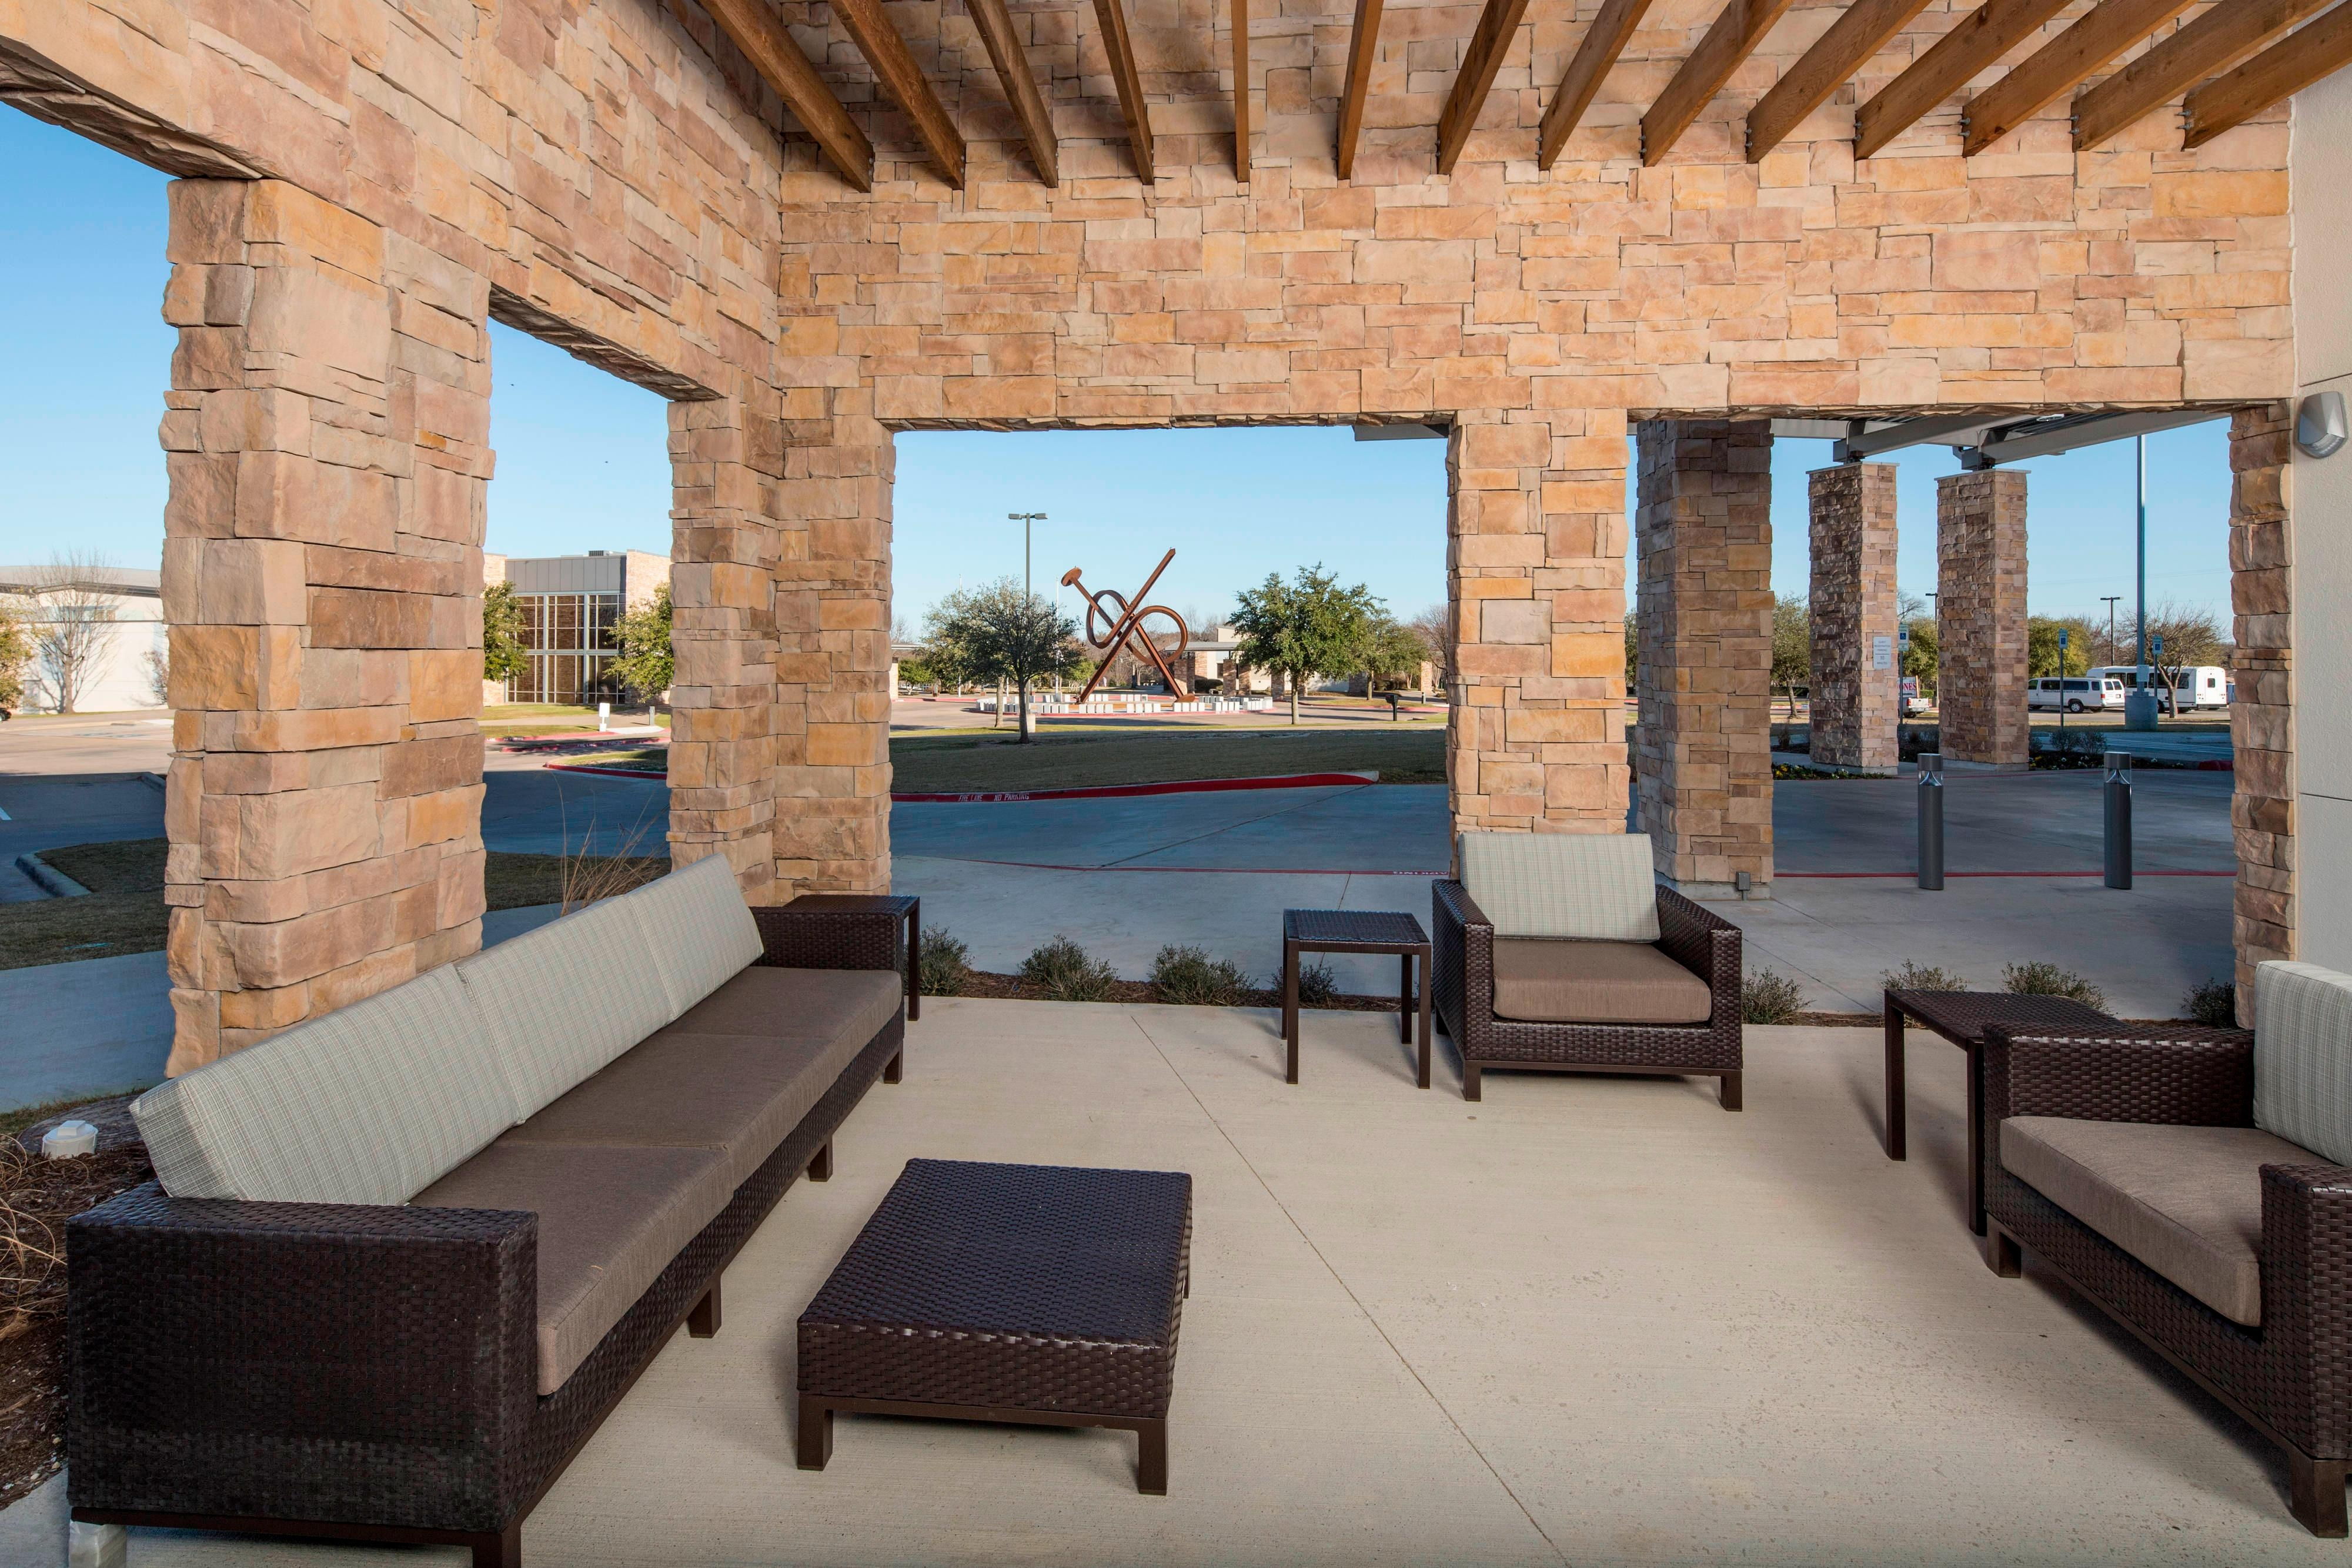 Midlothian hotel Outdoor Patio Seating